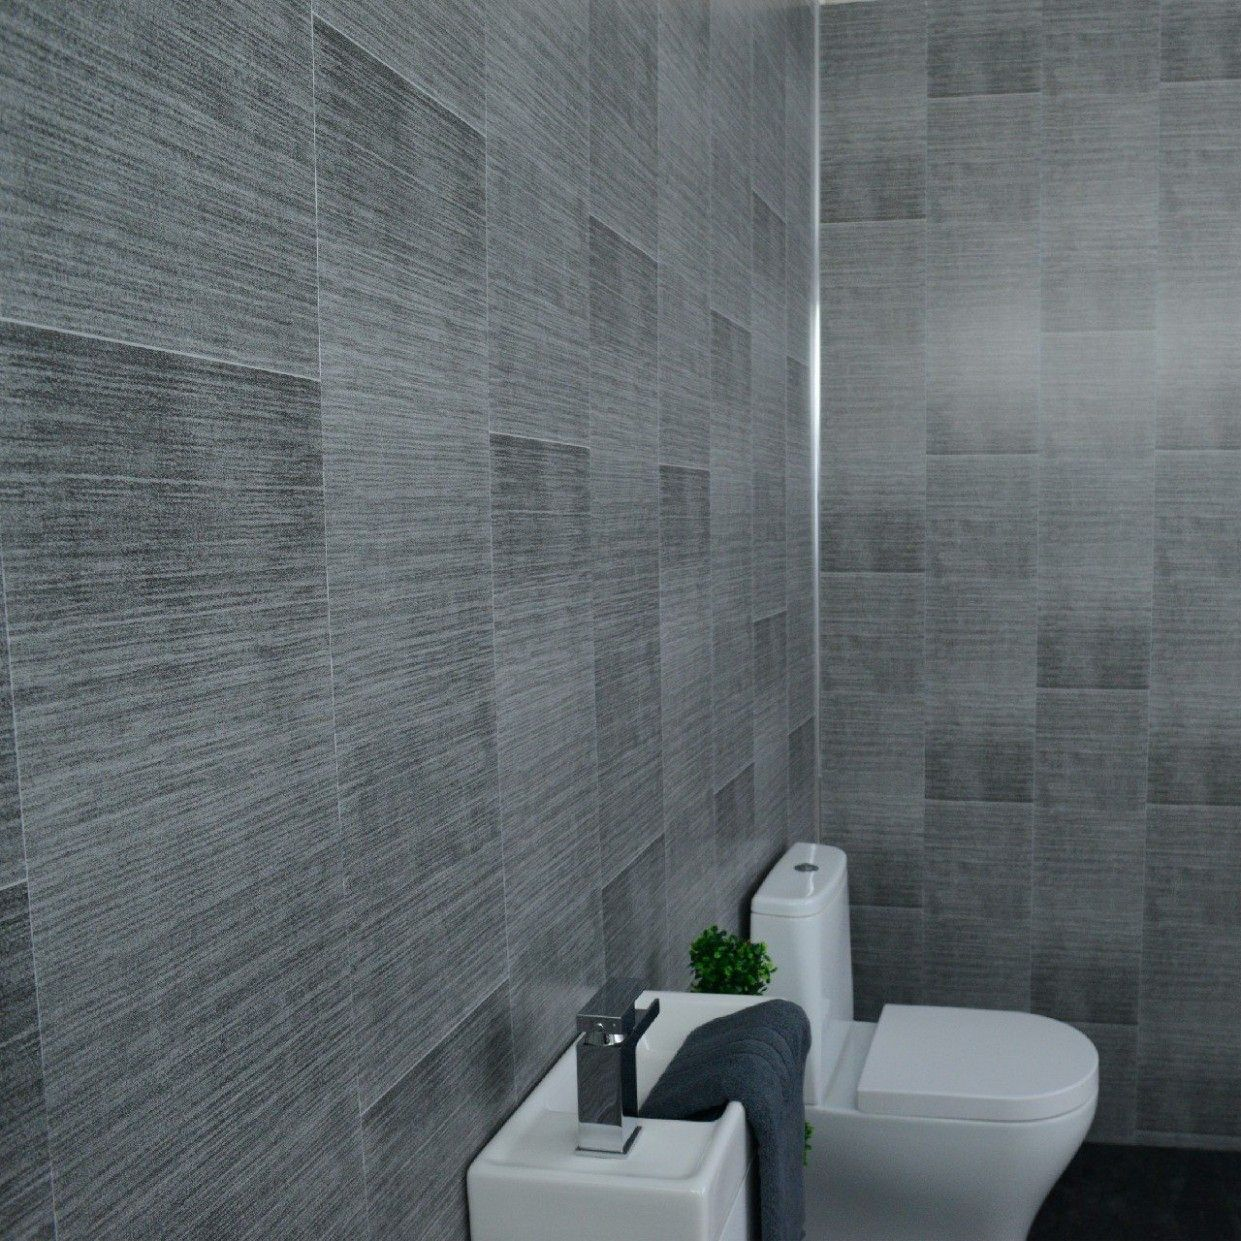 Bathroom Wall Tile Di 2020